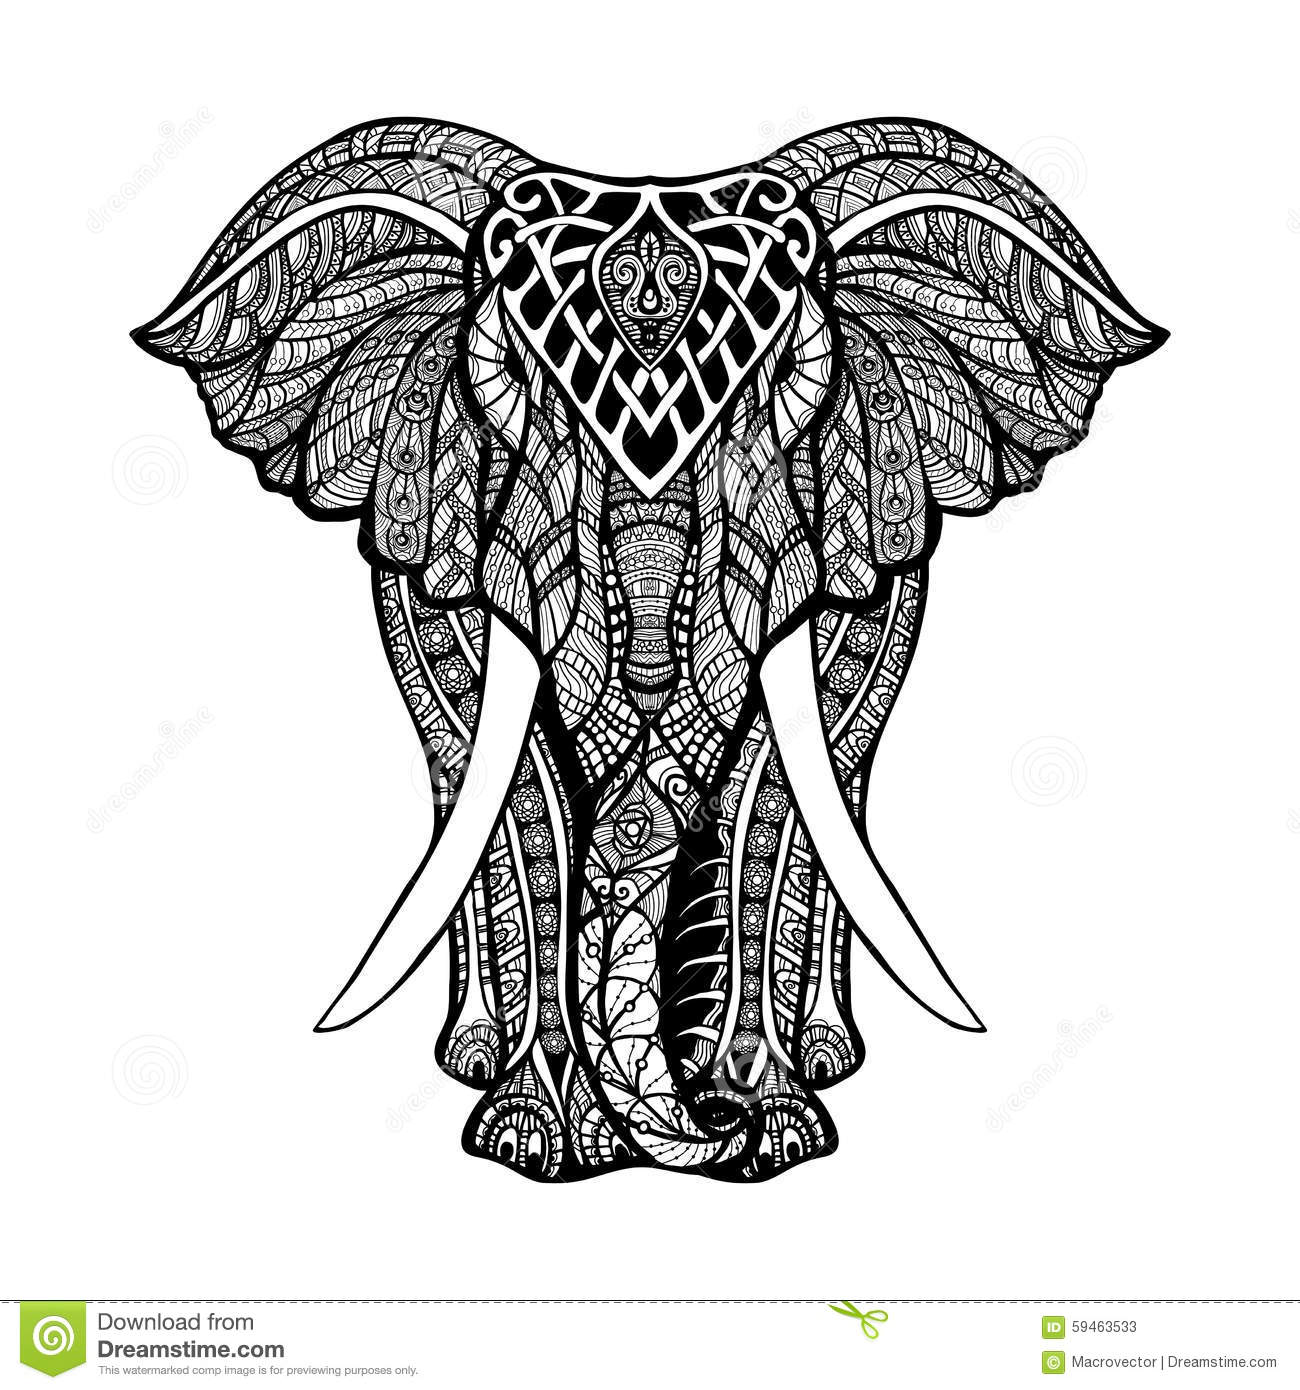 Decorative Elephant Front View With Stylized Ornament Hand Drawn